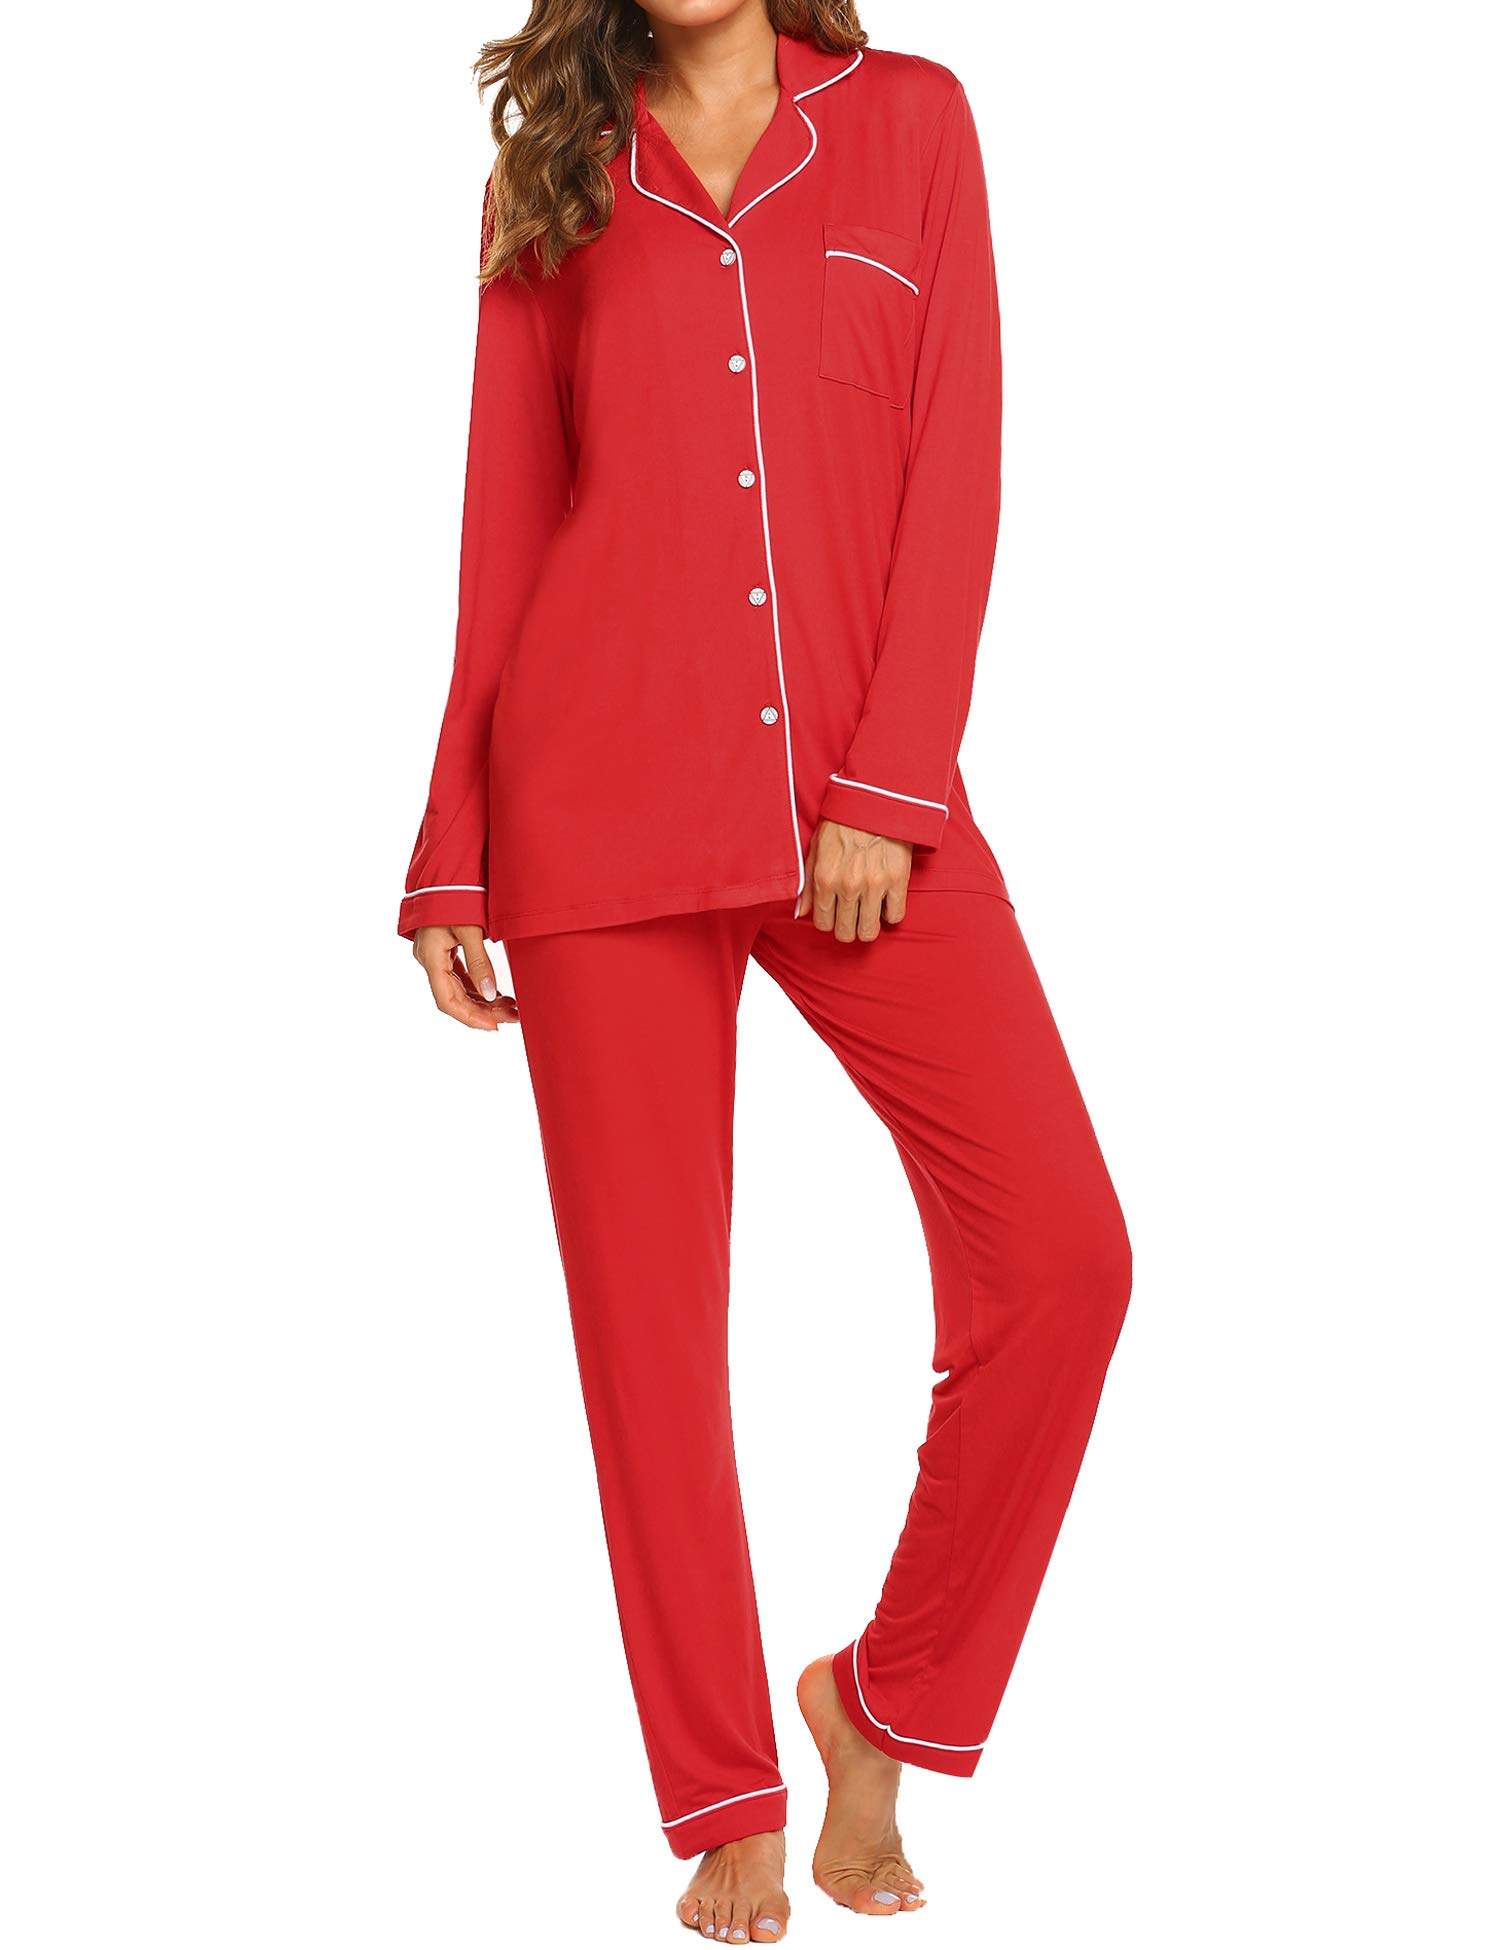 Image of Comfy and Stylish Red Pajamas for Women - Perfect for Christmas